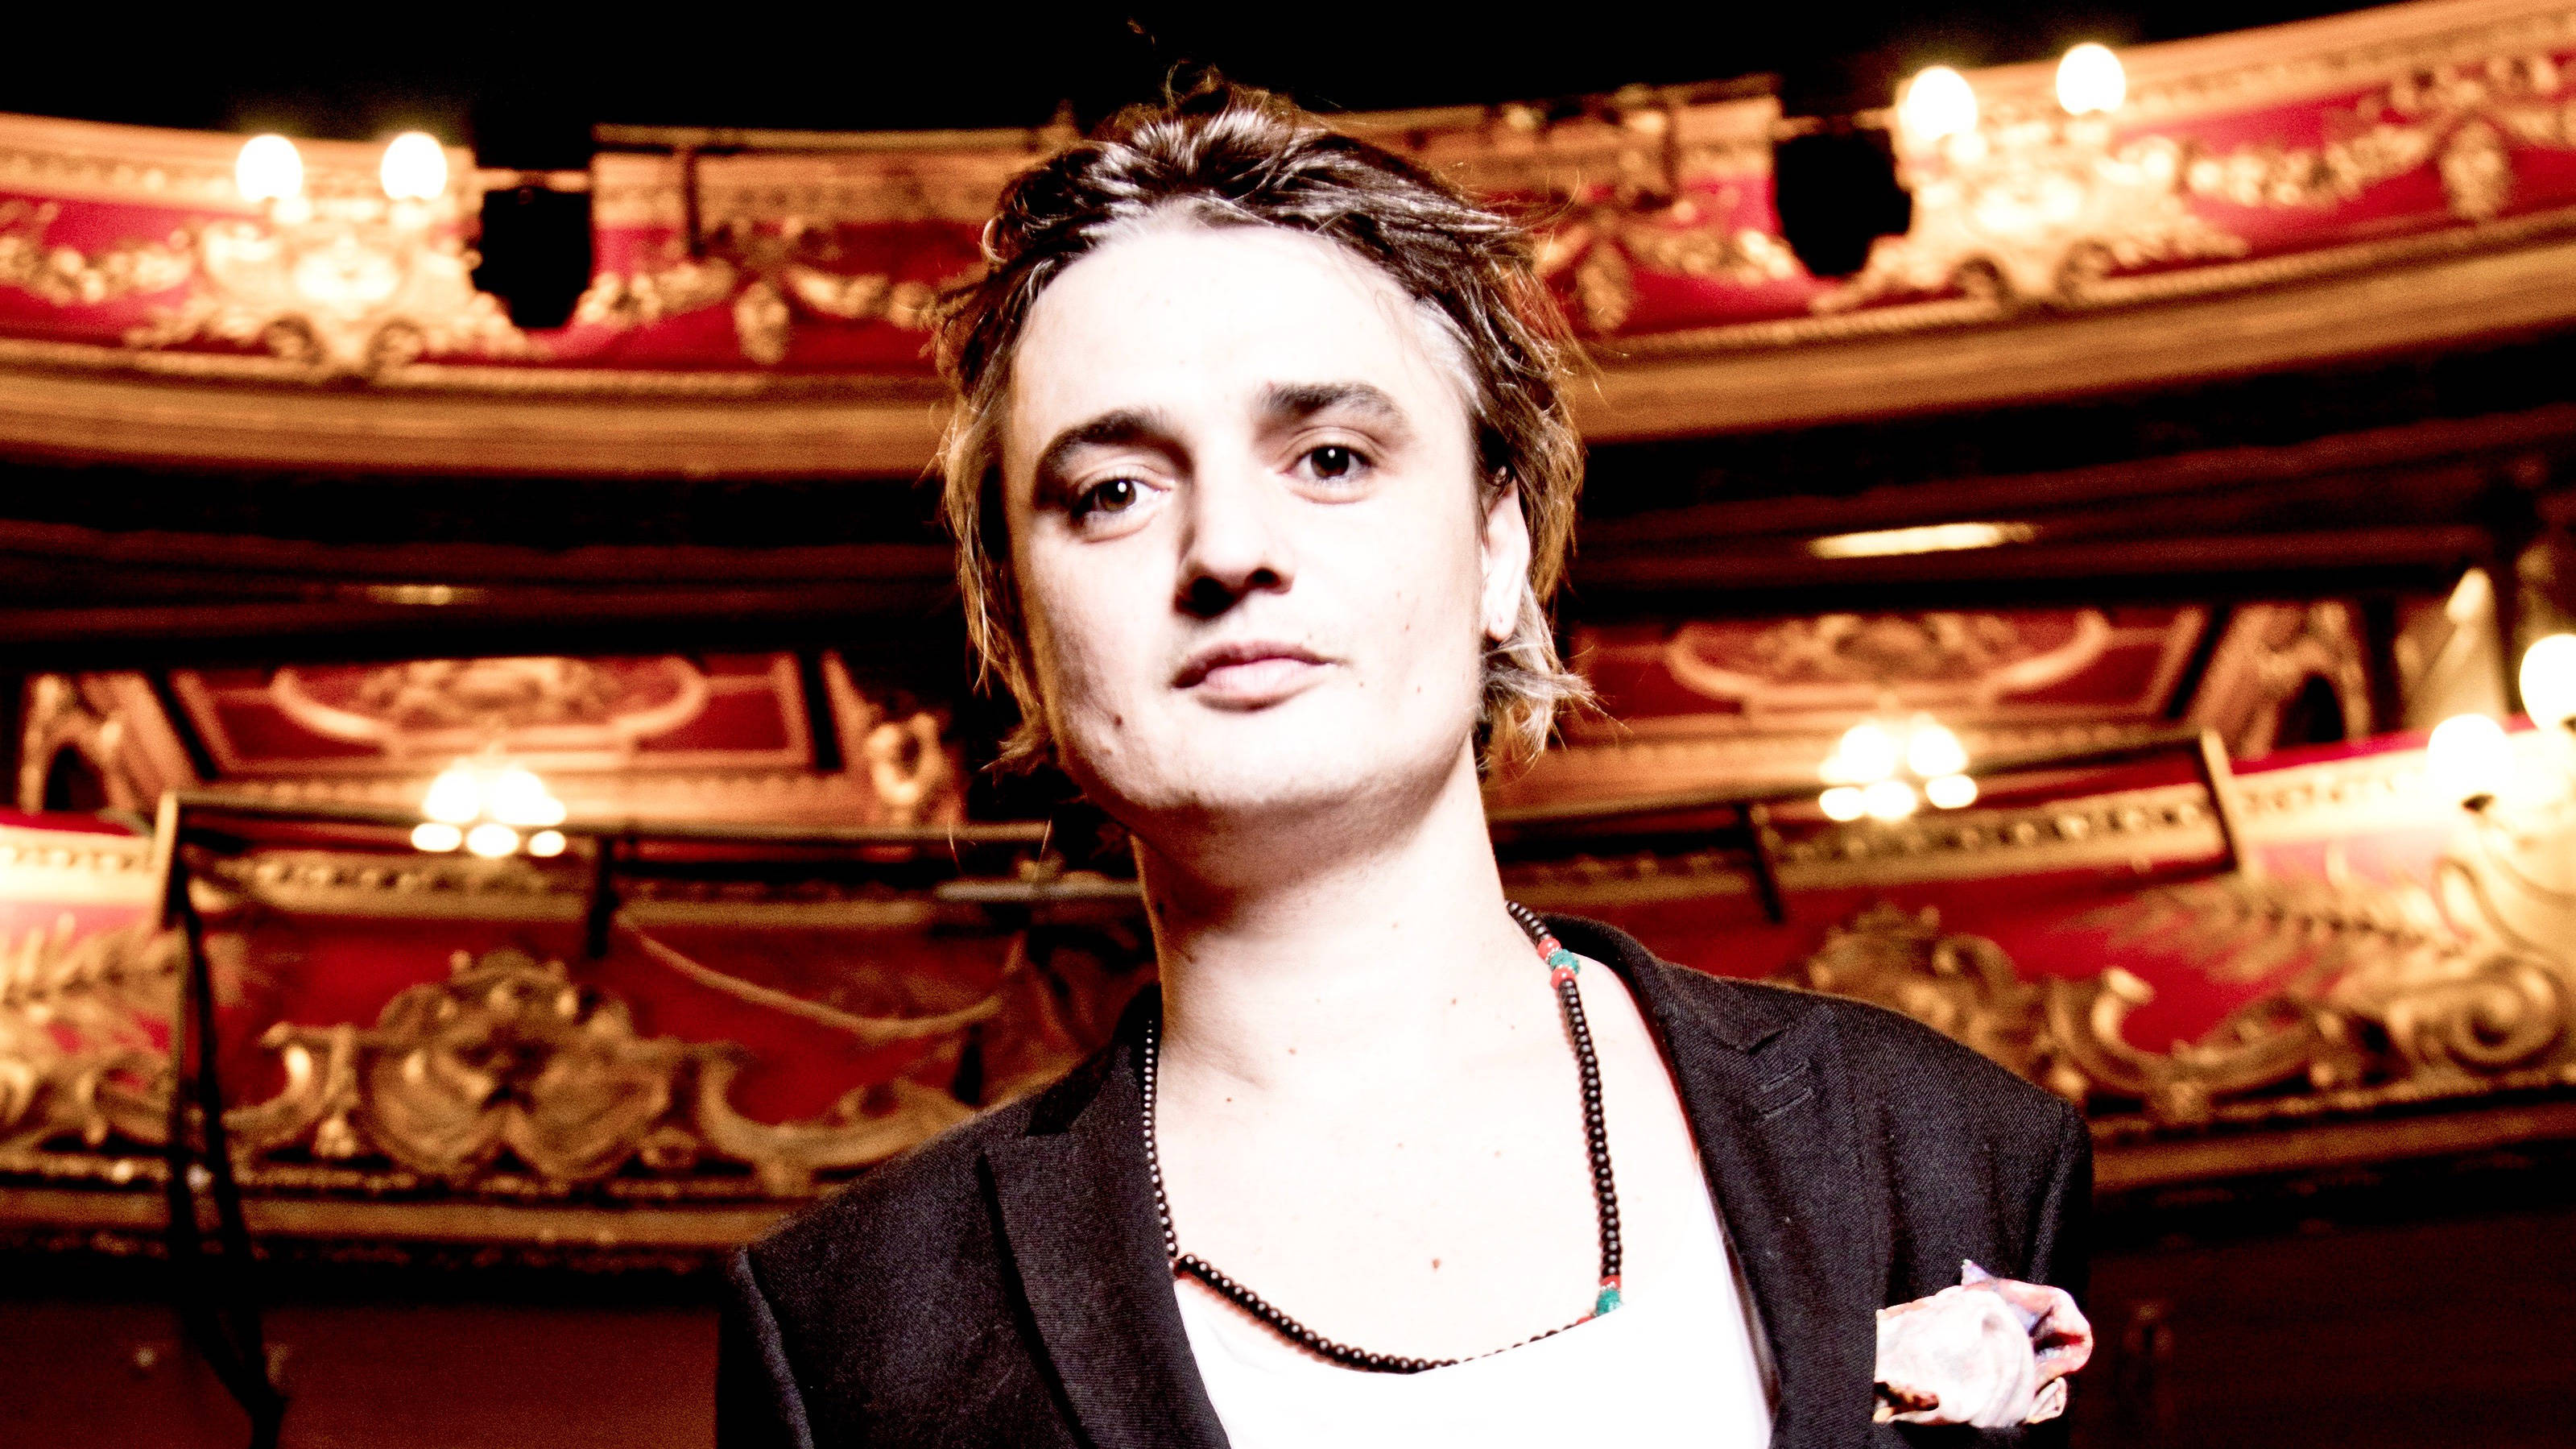 Peter Doherty warns fans scammers are using his name to steal their money and info